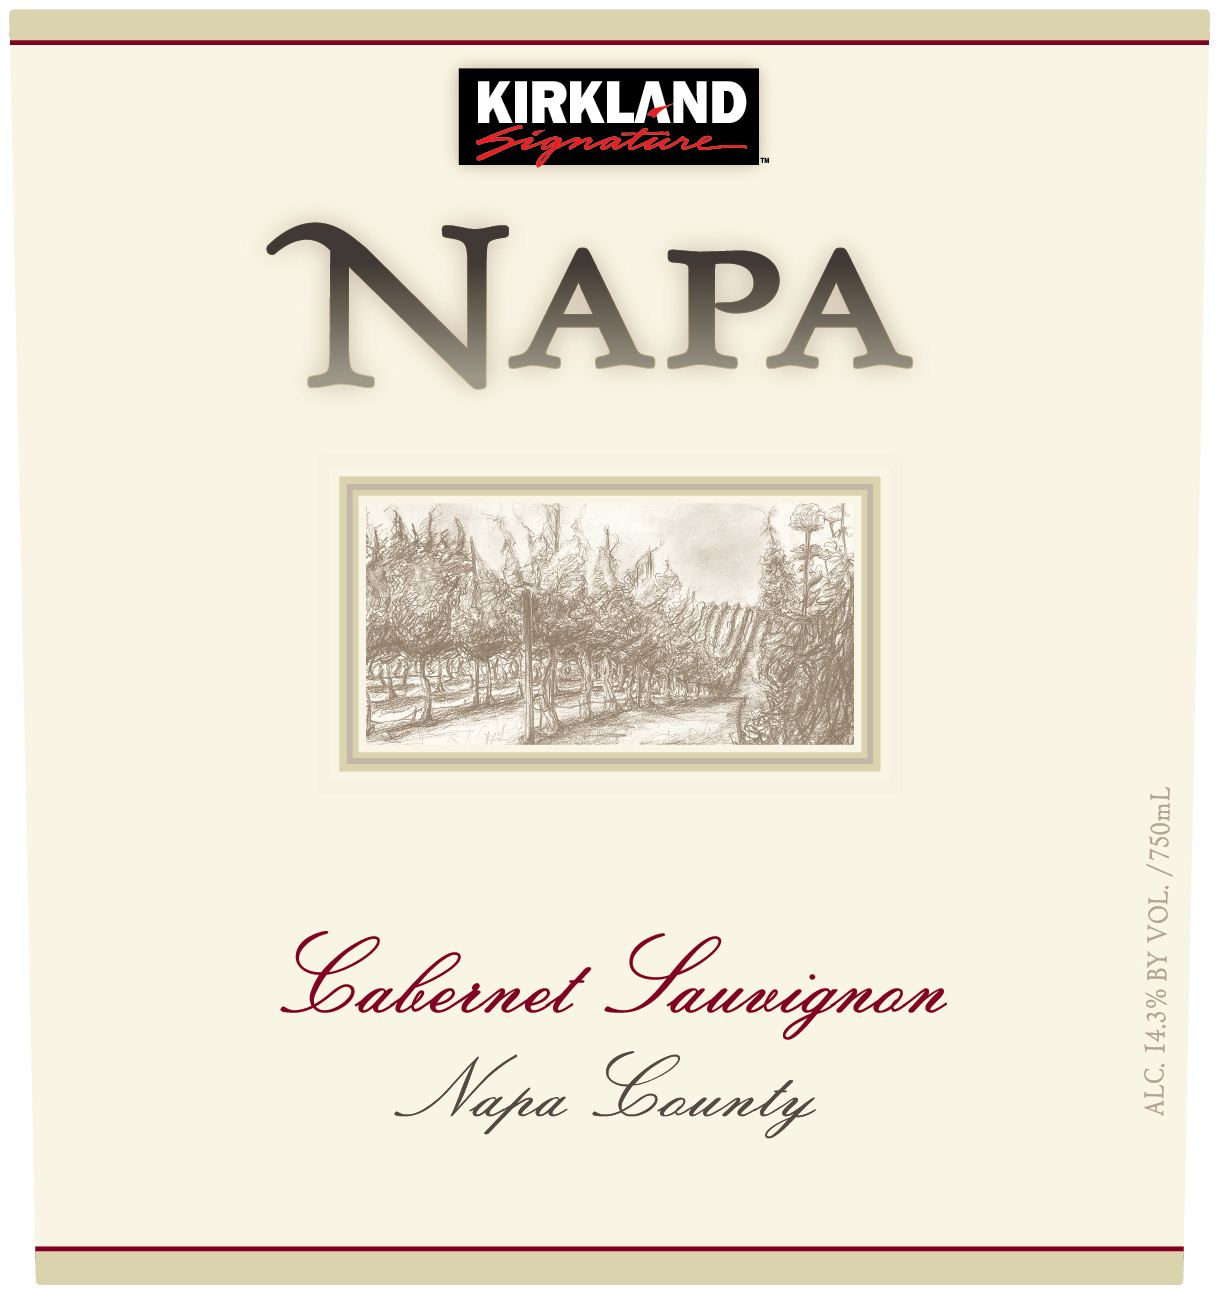 The Kirkland Signature Napa County Cabernet Sauvignon yields lush black and red berry fruit with enticing aromas of blackberry, black cherry, plum and cocoa. This full bodied wine is refreshed with lifting acidity and enhanced by well integrated oak. It is surrounded by multidimensional flavors of juicy black and red fruit, cedar spice and vanilla oak skillfully balanced to an elegant lengthy finish.